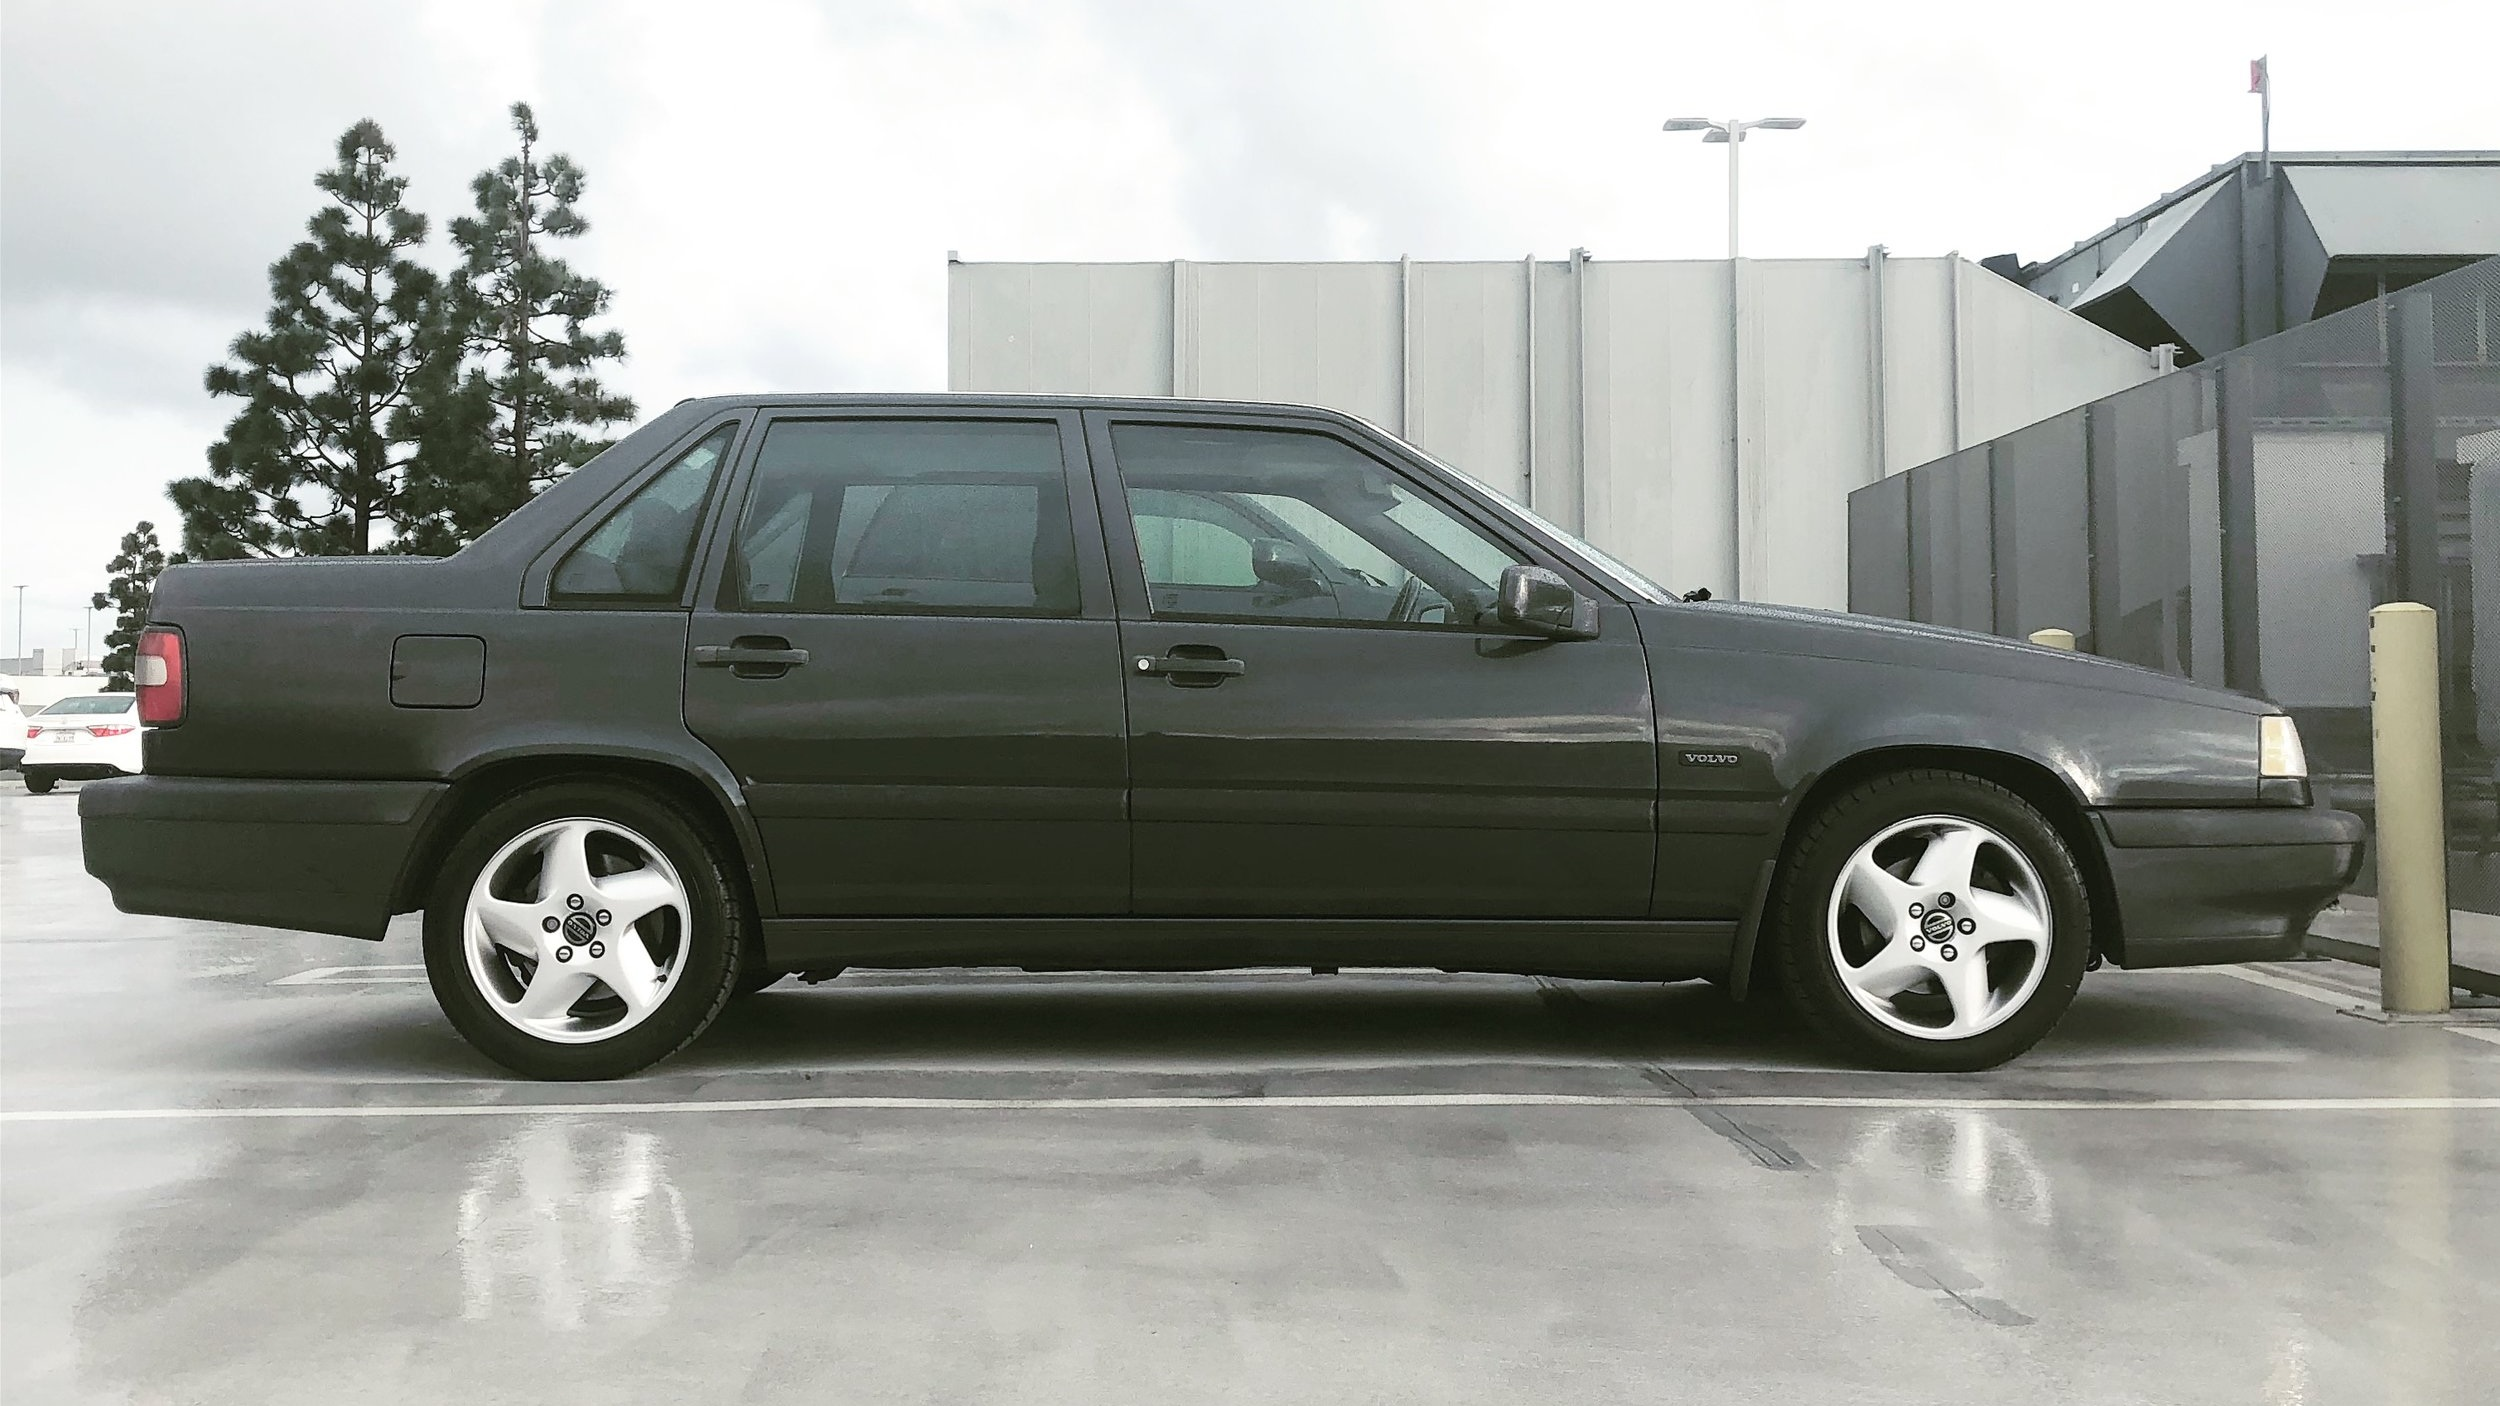 Picked up this single owner, concert pianist, garage kept 1995 Volvo 850 Turbo